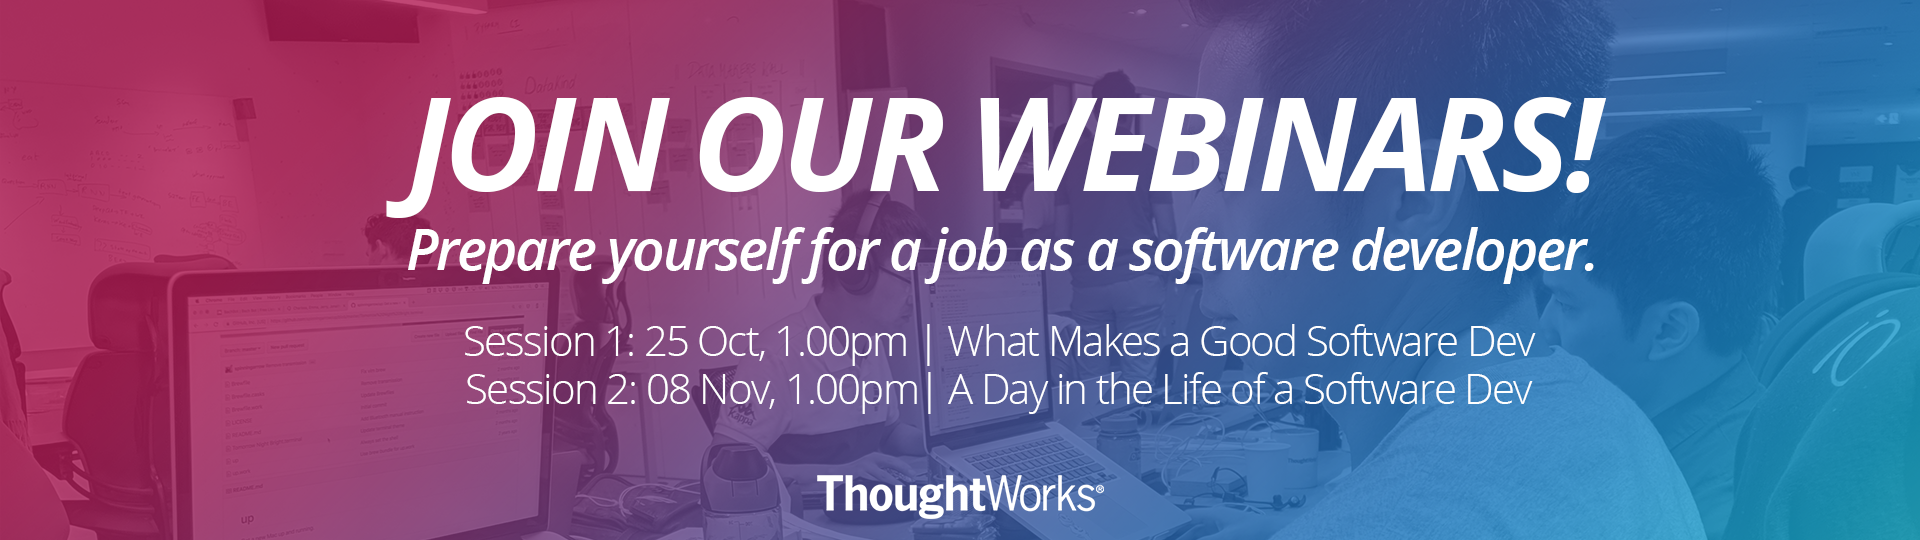 GRADUATE WEBINARS: PREPARING FOR LIFE AS A SOFTWARE DEV